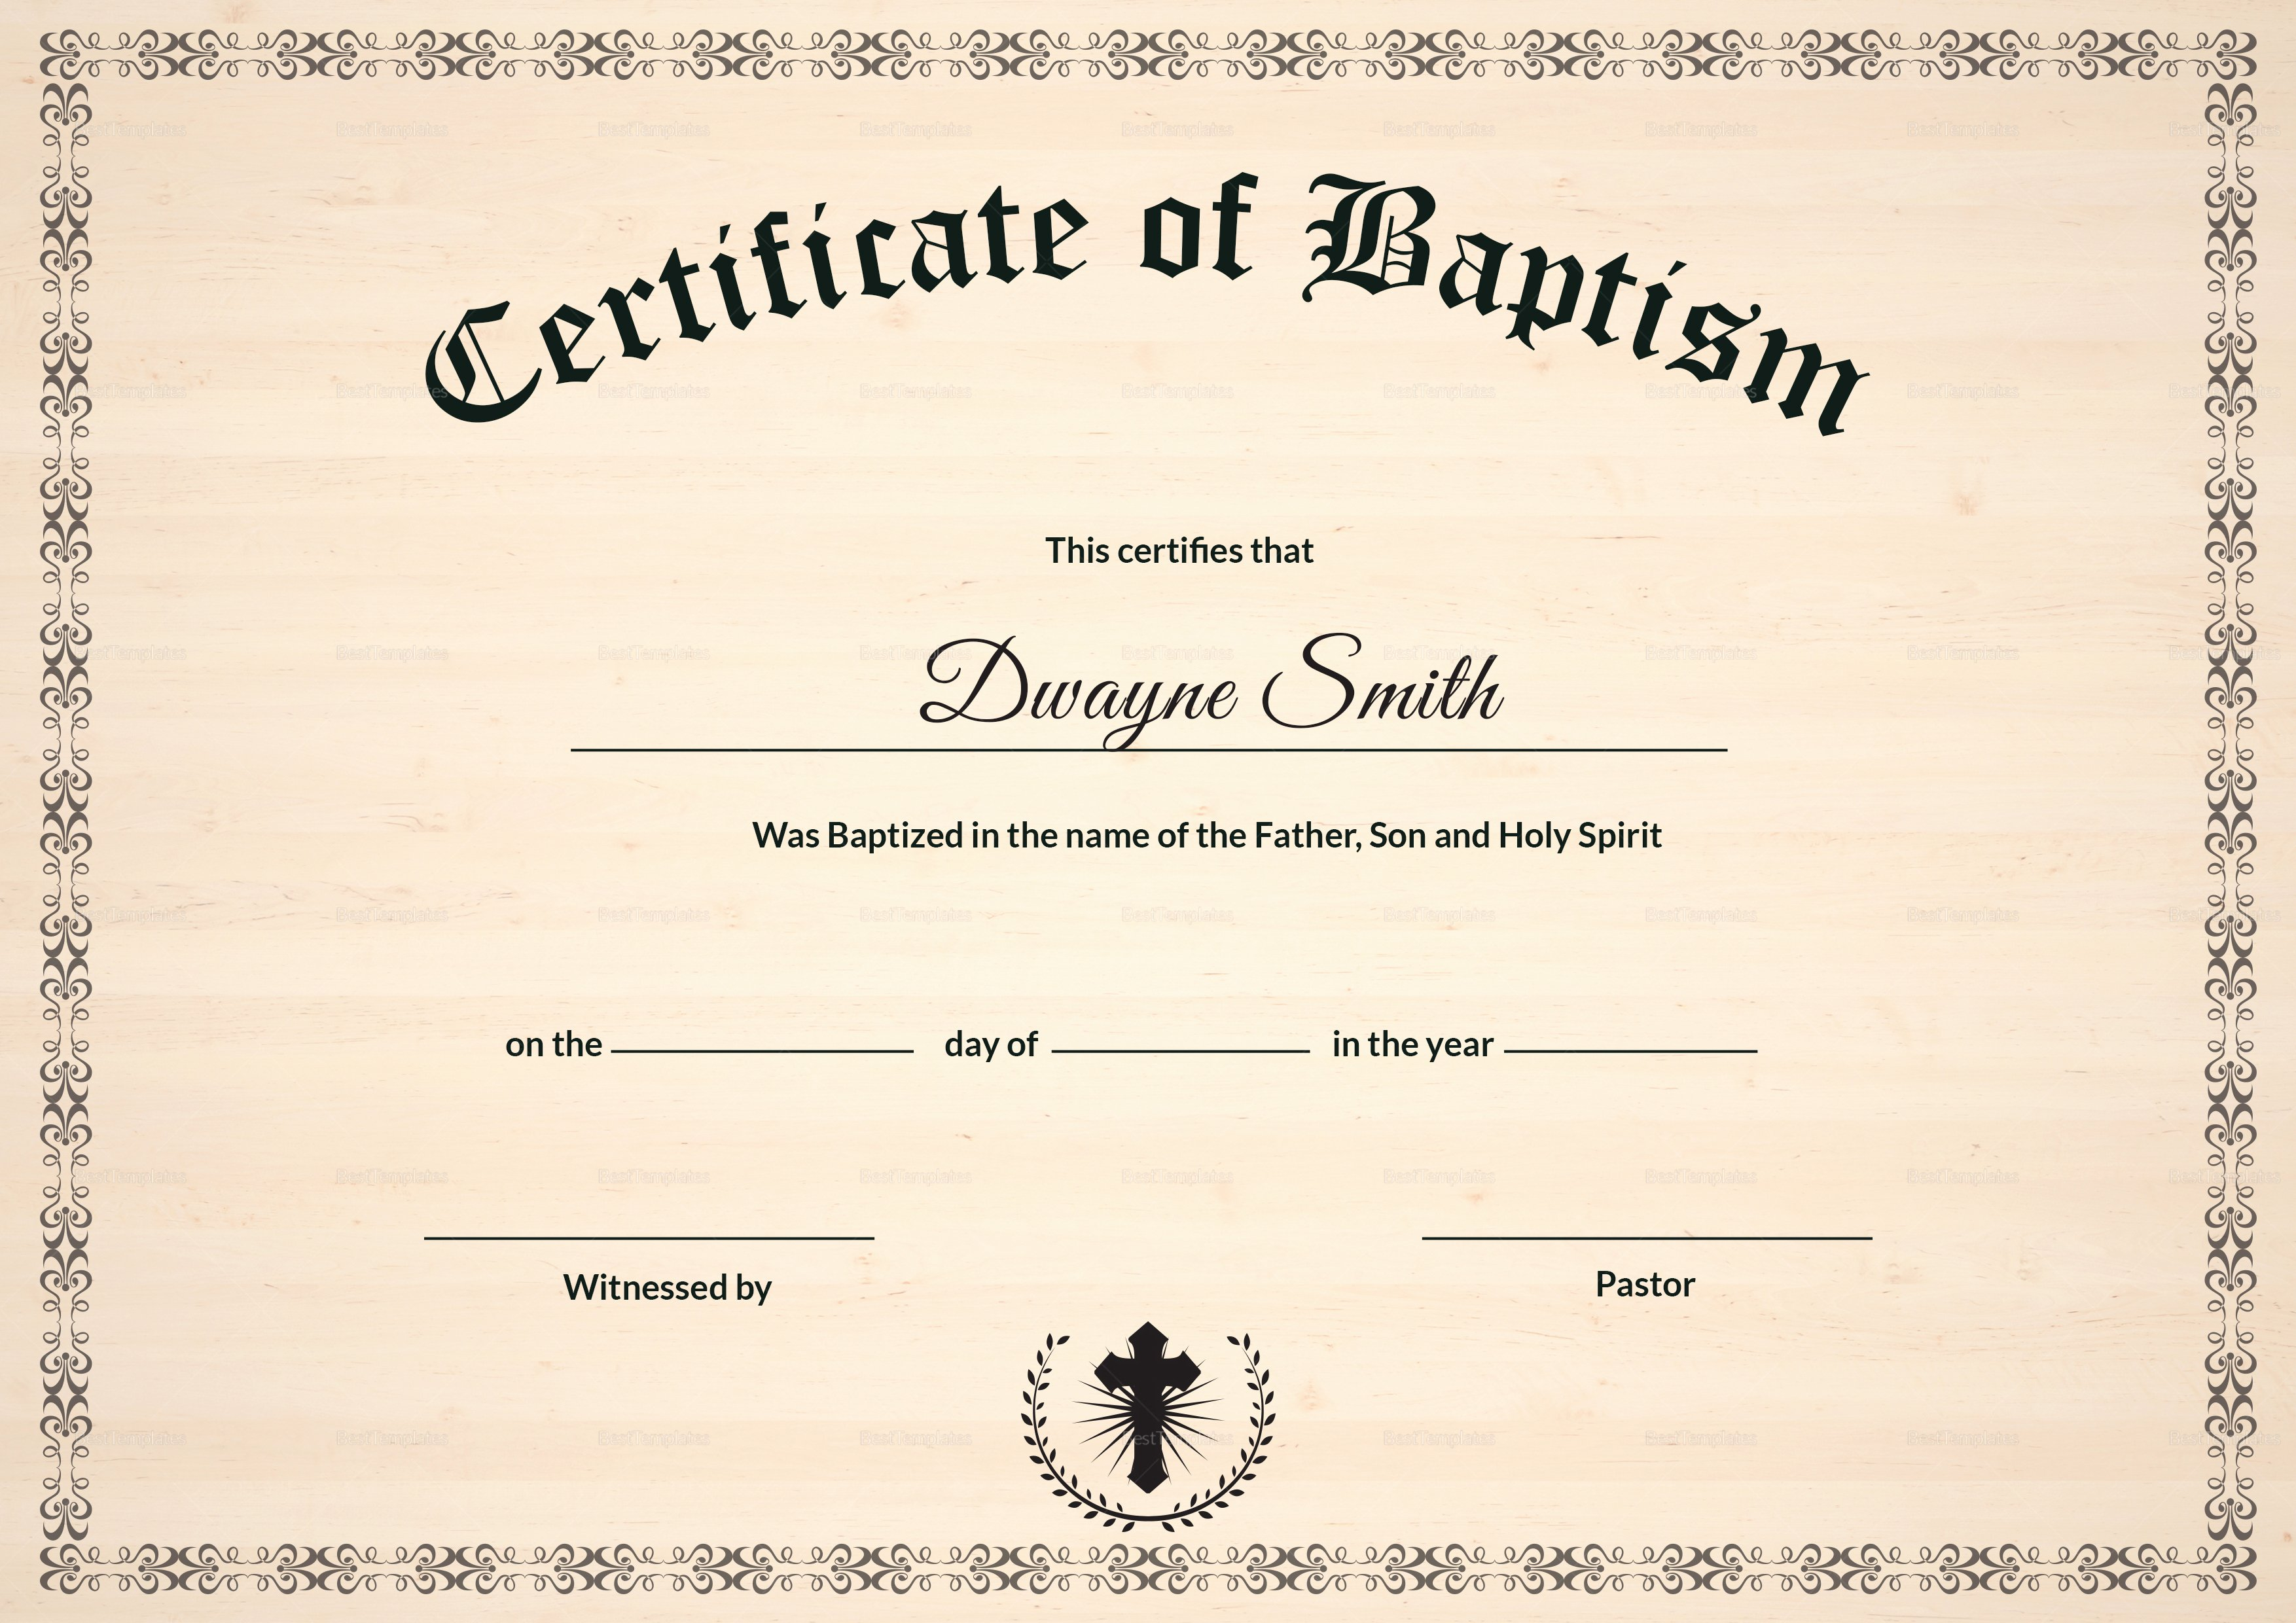 Certificate Of Baptism Template Beautiful Baptism Certificate Design Template In Psd Word